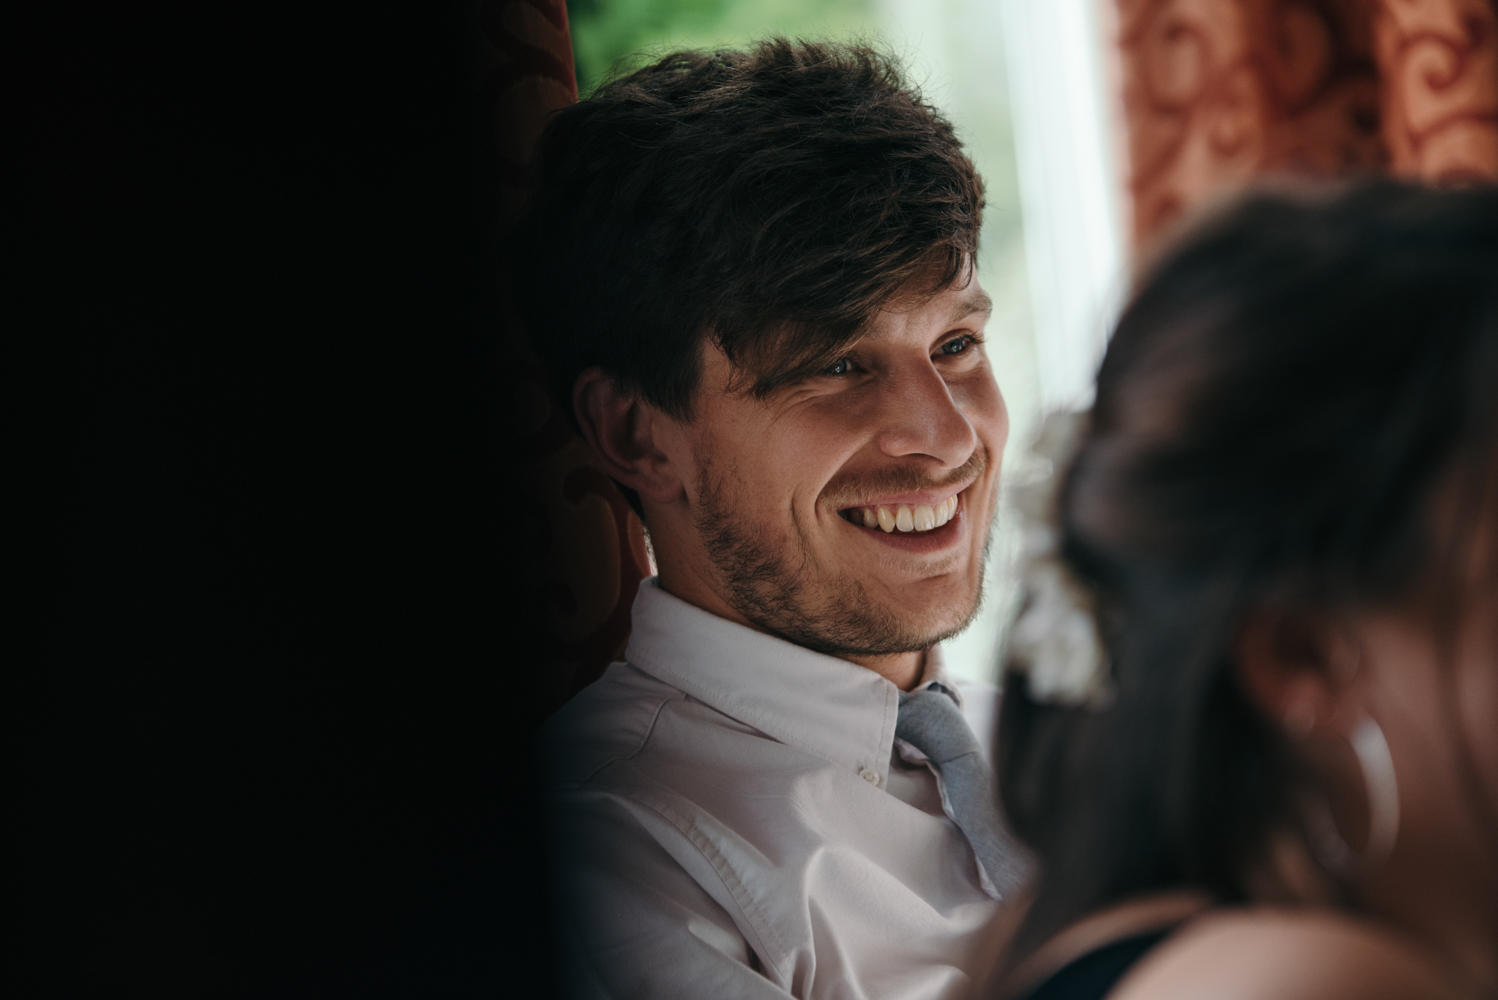 A male wedding guest having a laugh at something the groom said in his speech